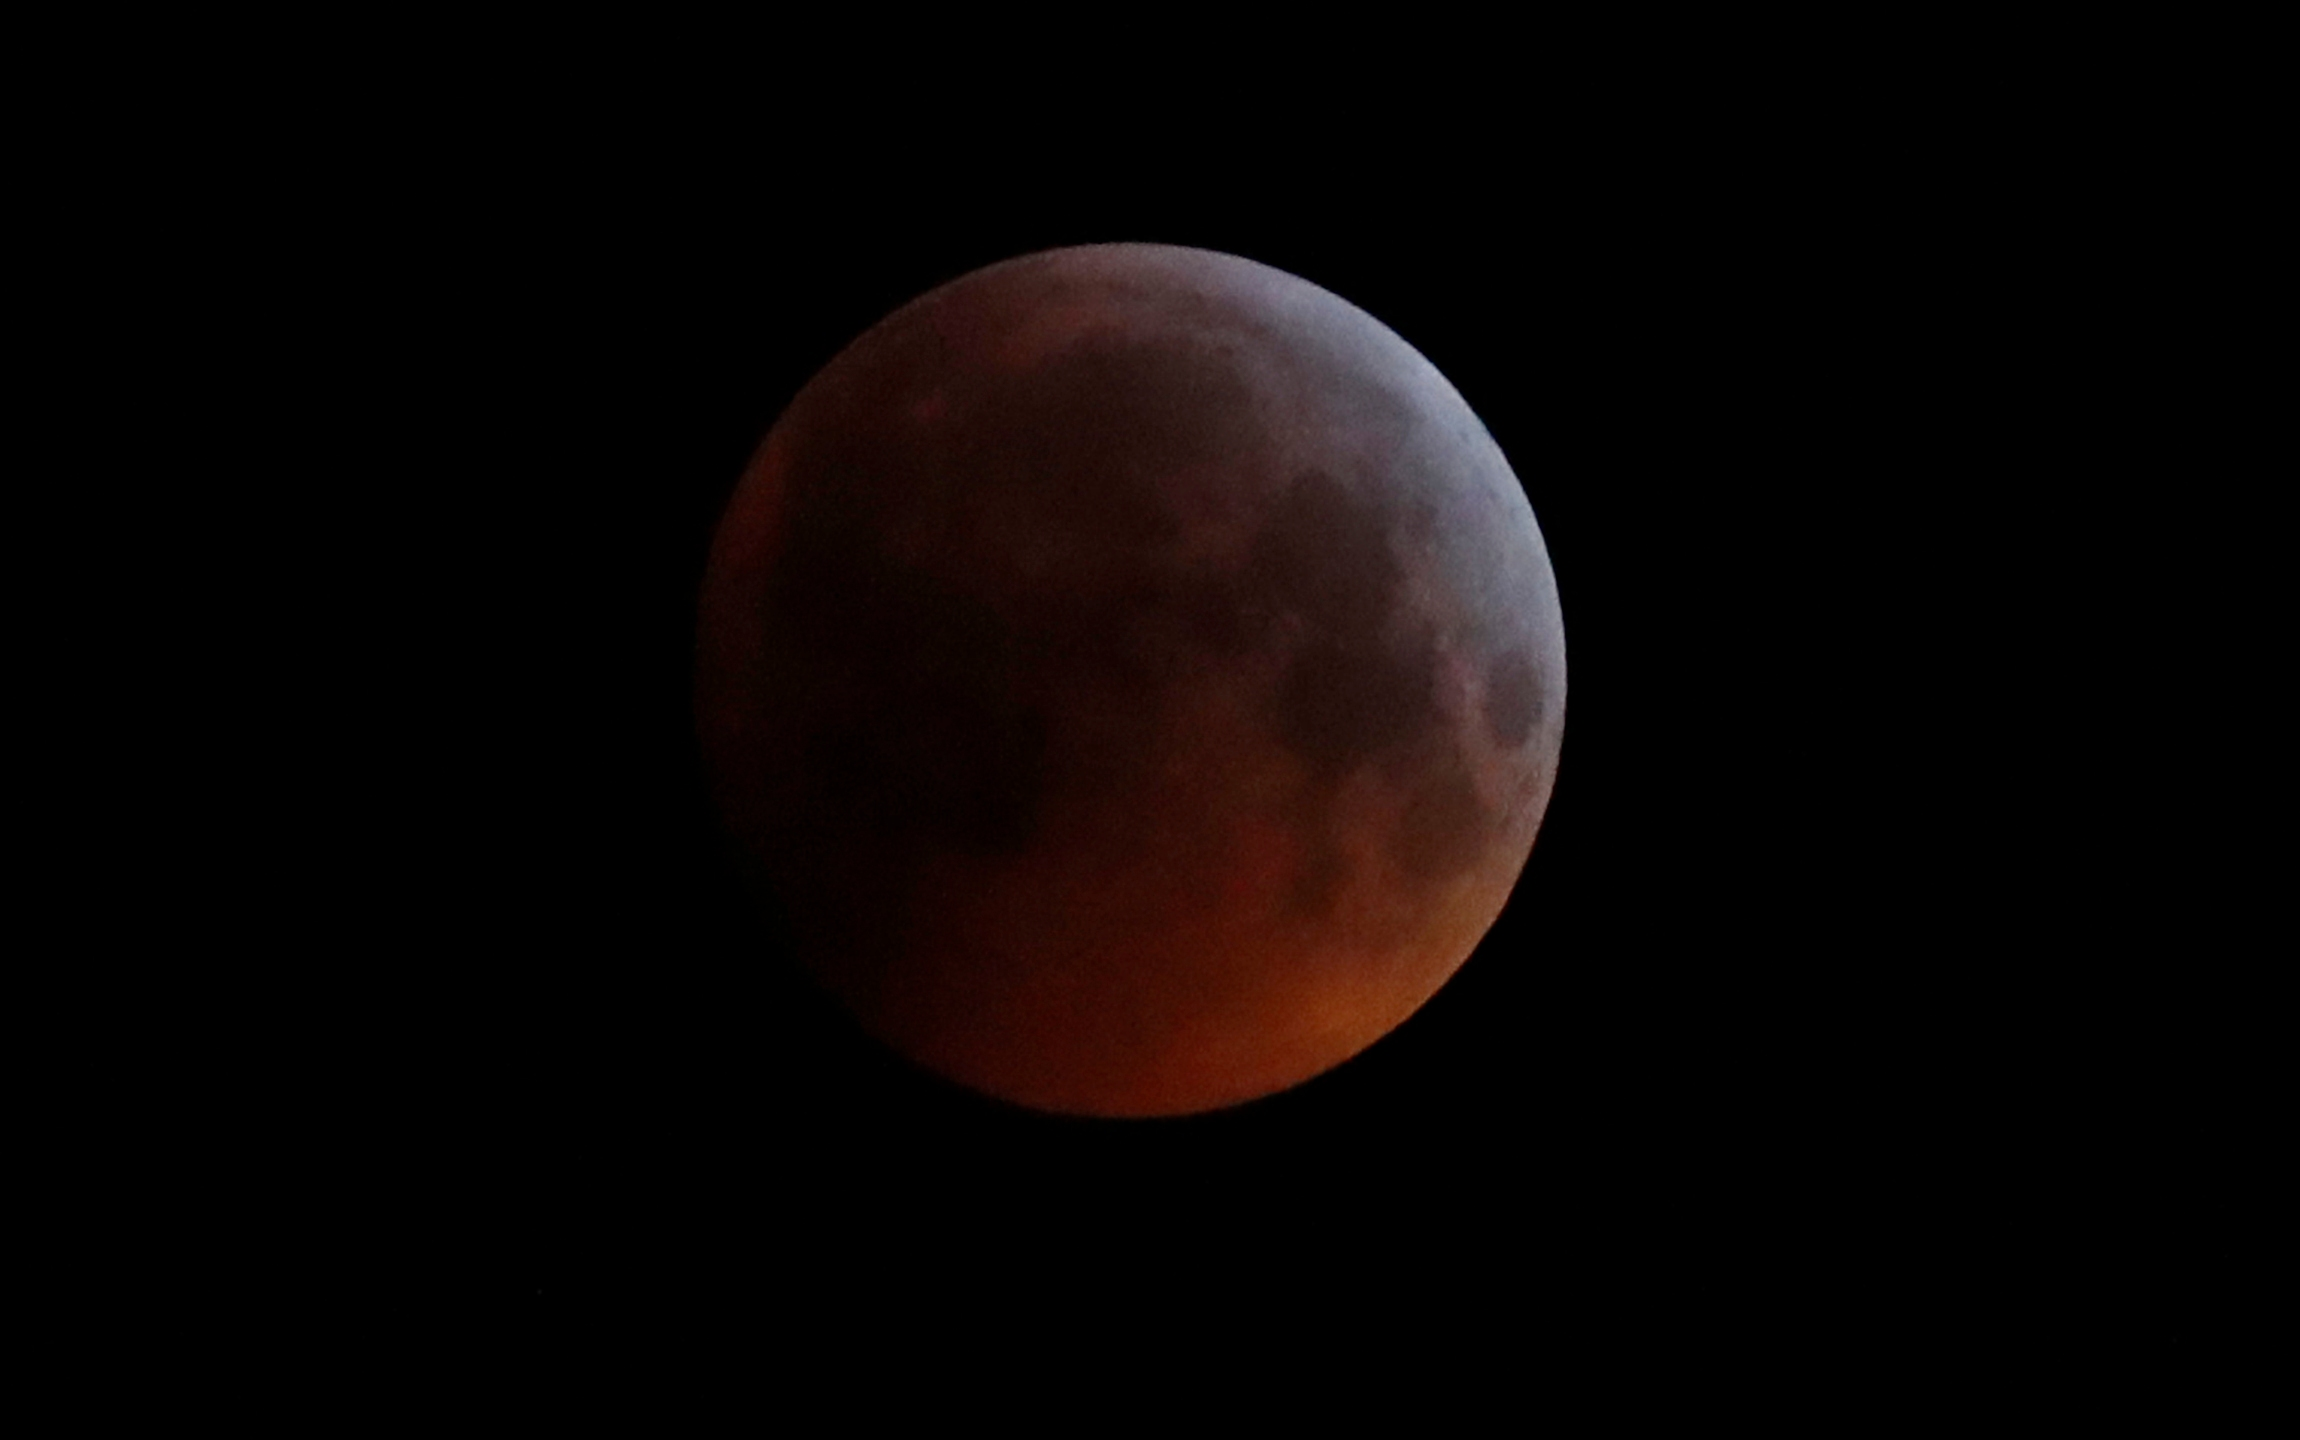 """In this Monday, Jan. 21, 2019 file photo, the Earth's shadow falls across the full moon seen above Brighton, southeast England. The first total lunar eclipse in more than two years coincides with a supermoon this week for a cosmic show. This super """"blood"""" moon will be visible Wednesday, May 26, 2021 across the Pacific _ offering the best viewing _ as well as the western half of North America, bottom of South America and eastern Asia. (AP Photo/Alastair Grant, File)"""